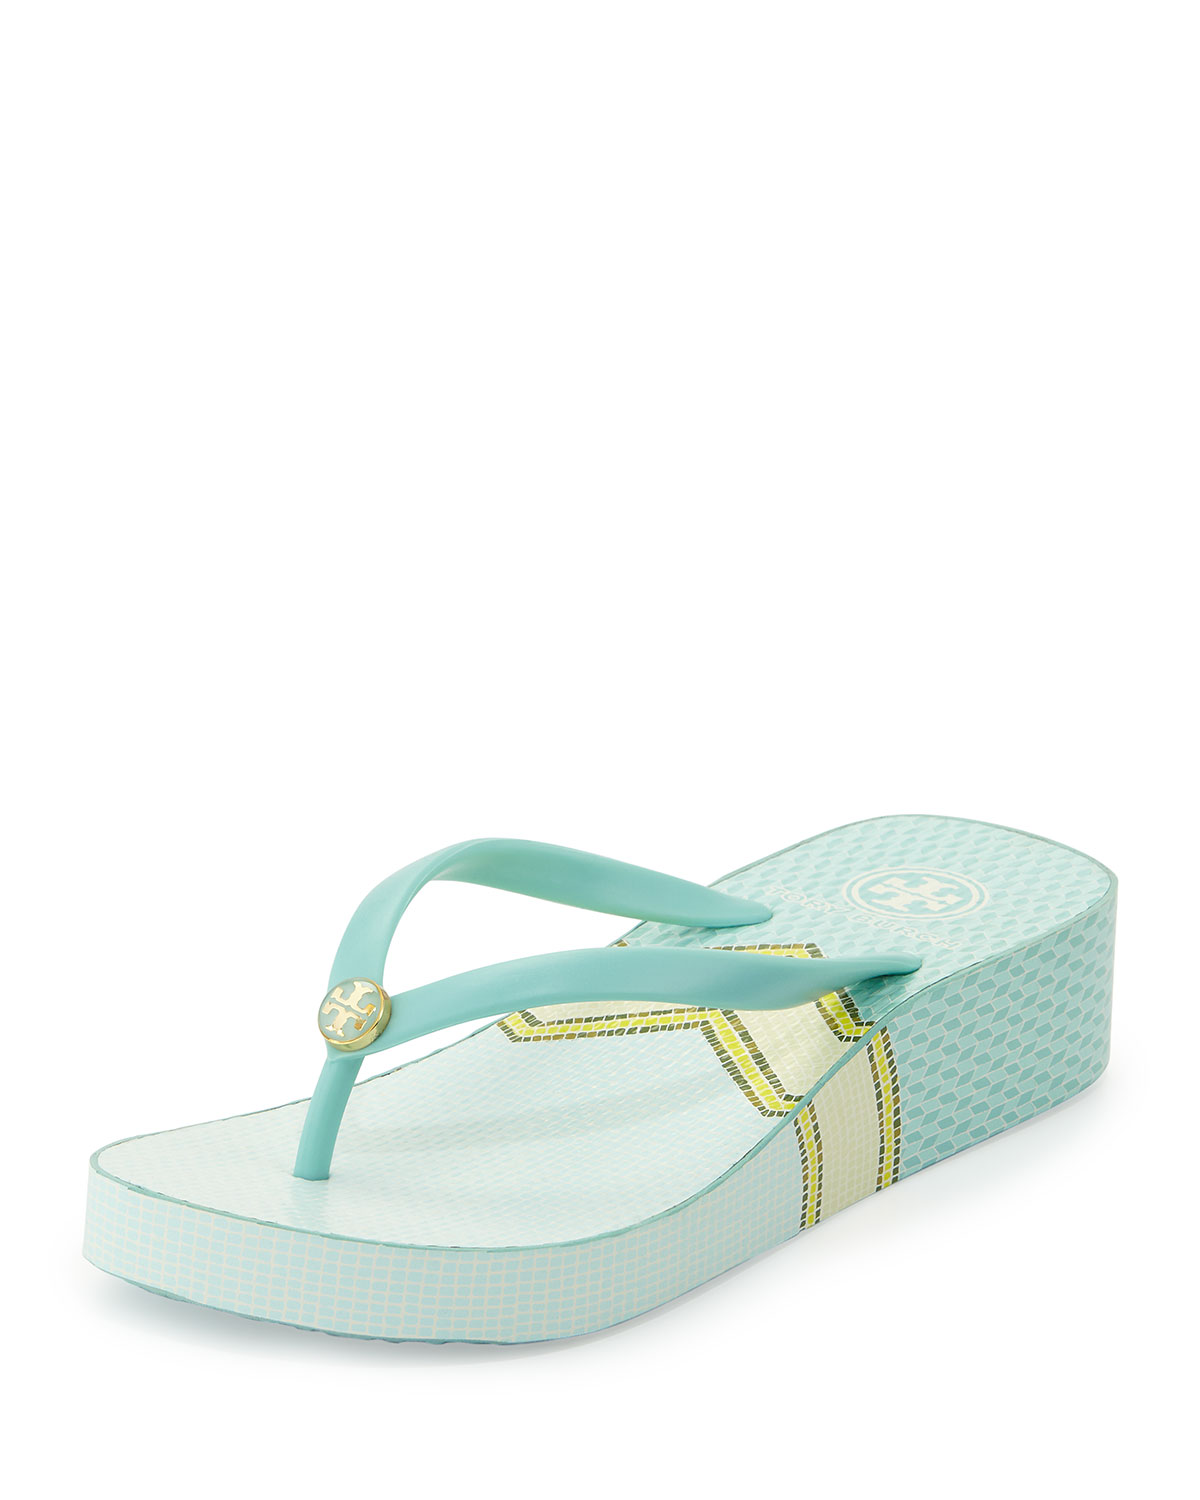 ec7a14e6487c Tory Burch Thandie Printed Wedge Flip-Flop Sandal